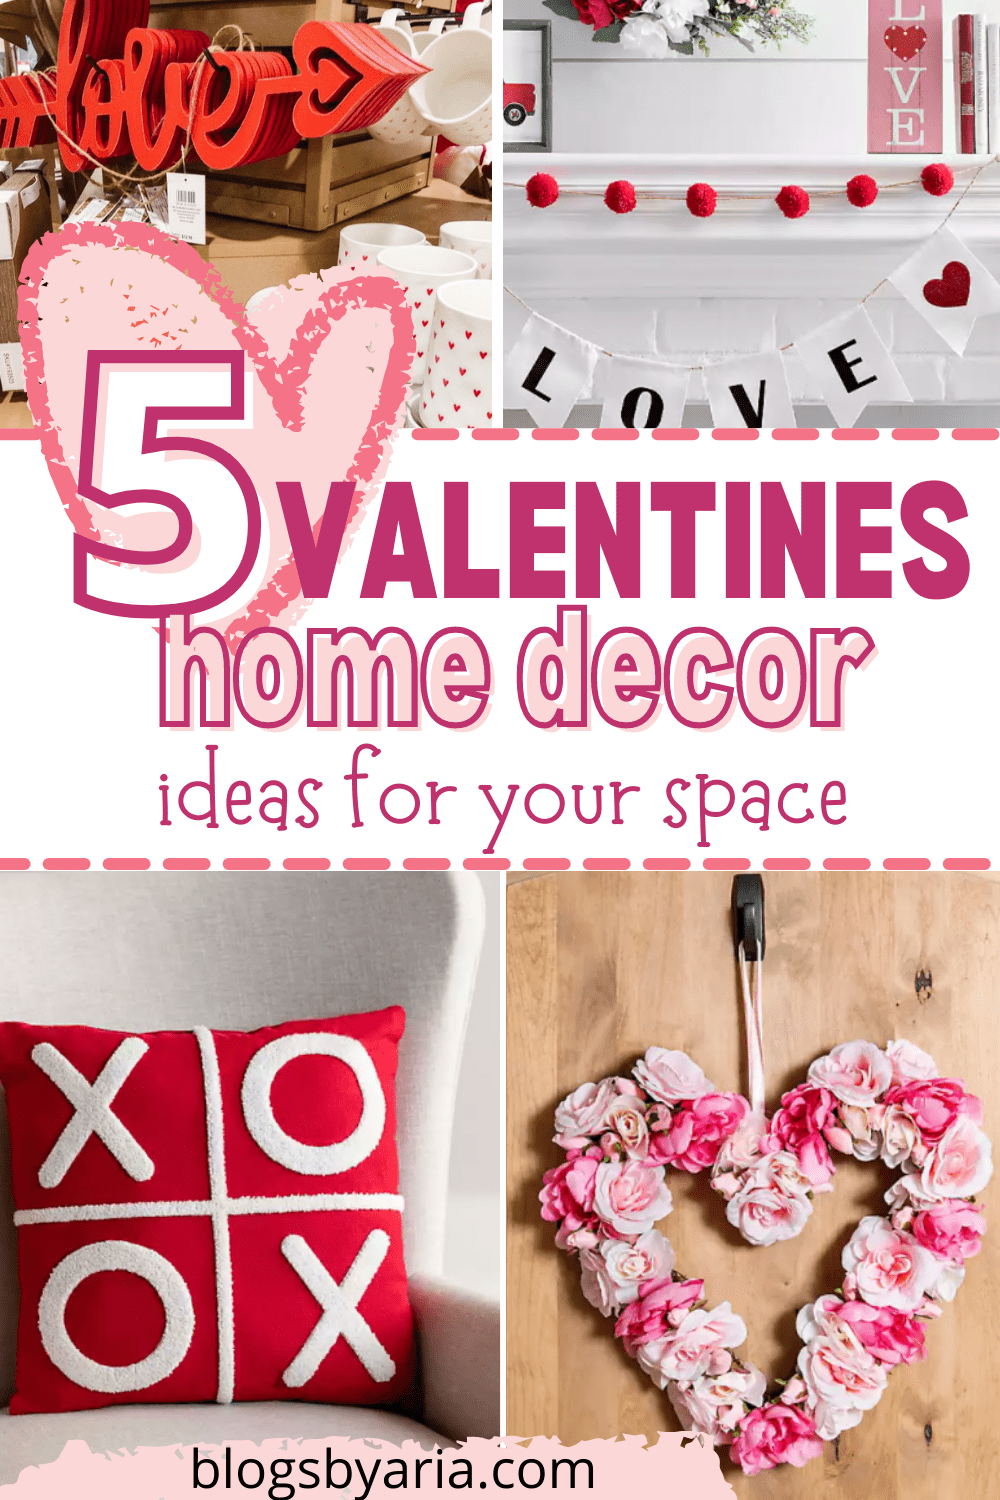 Valentines home decor ideas for your space